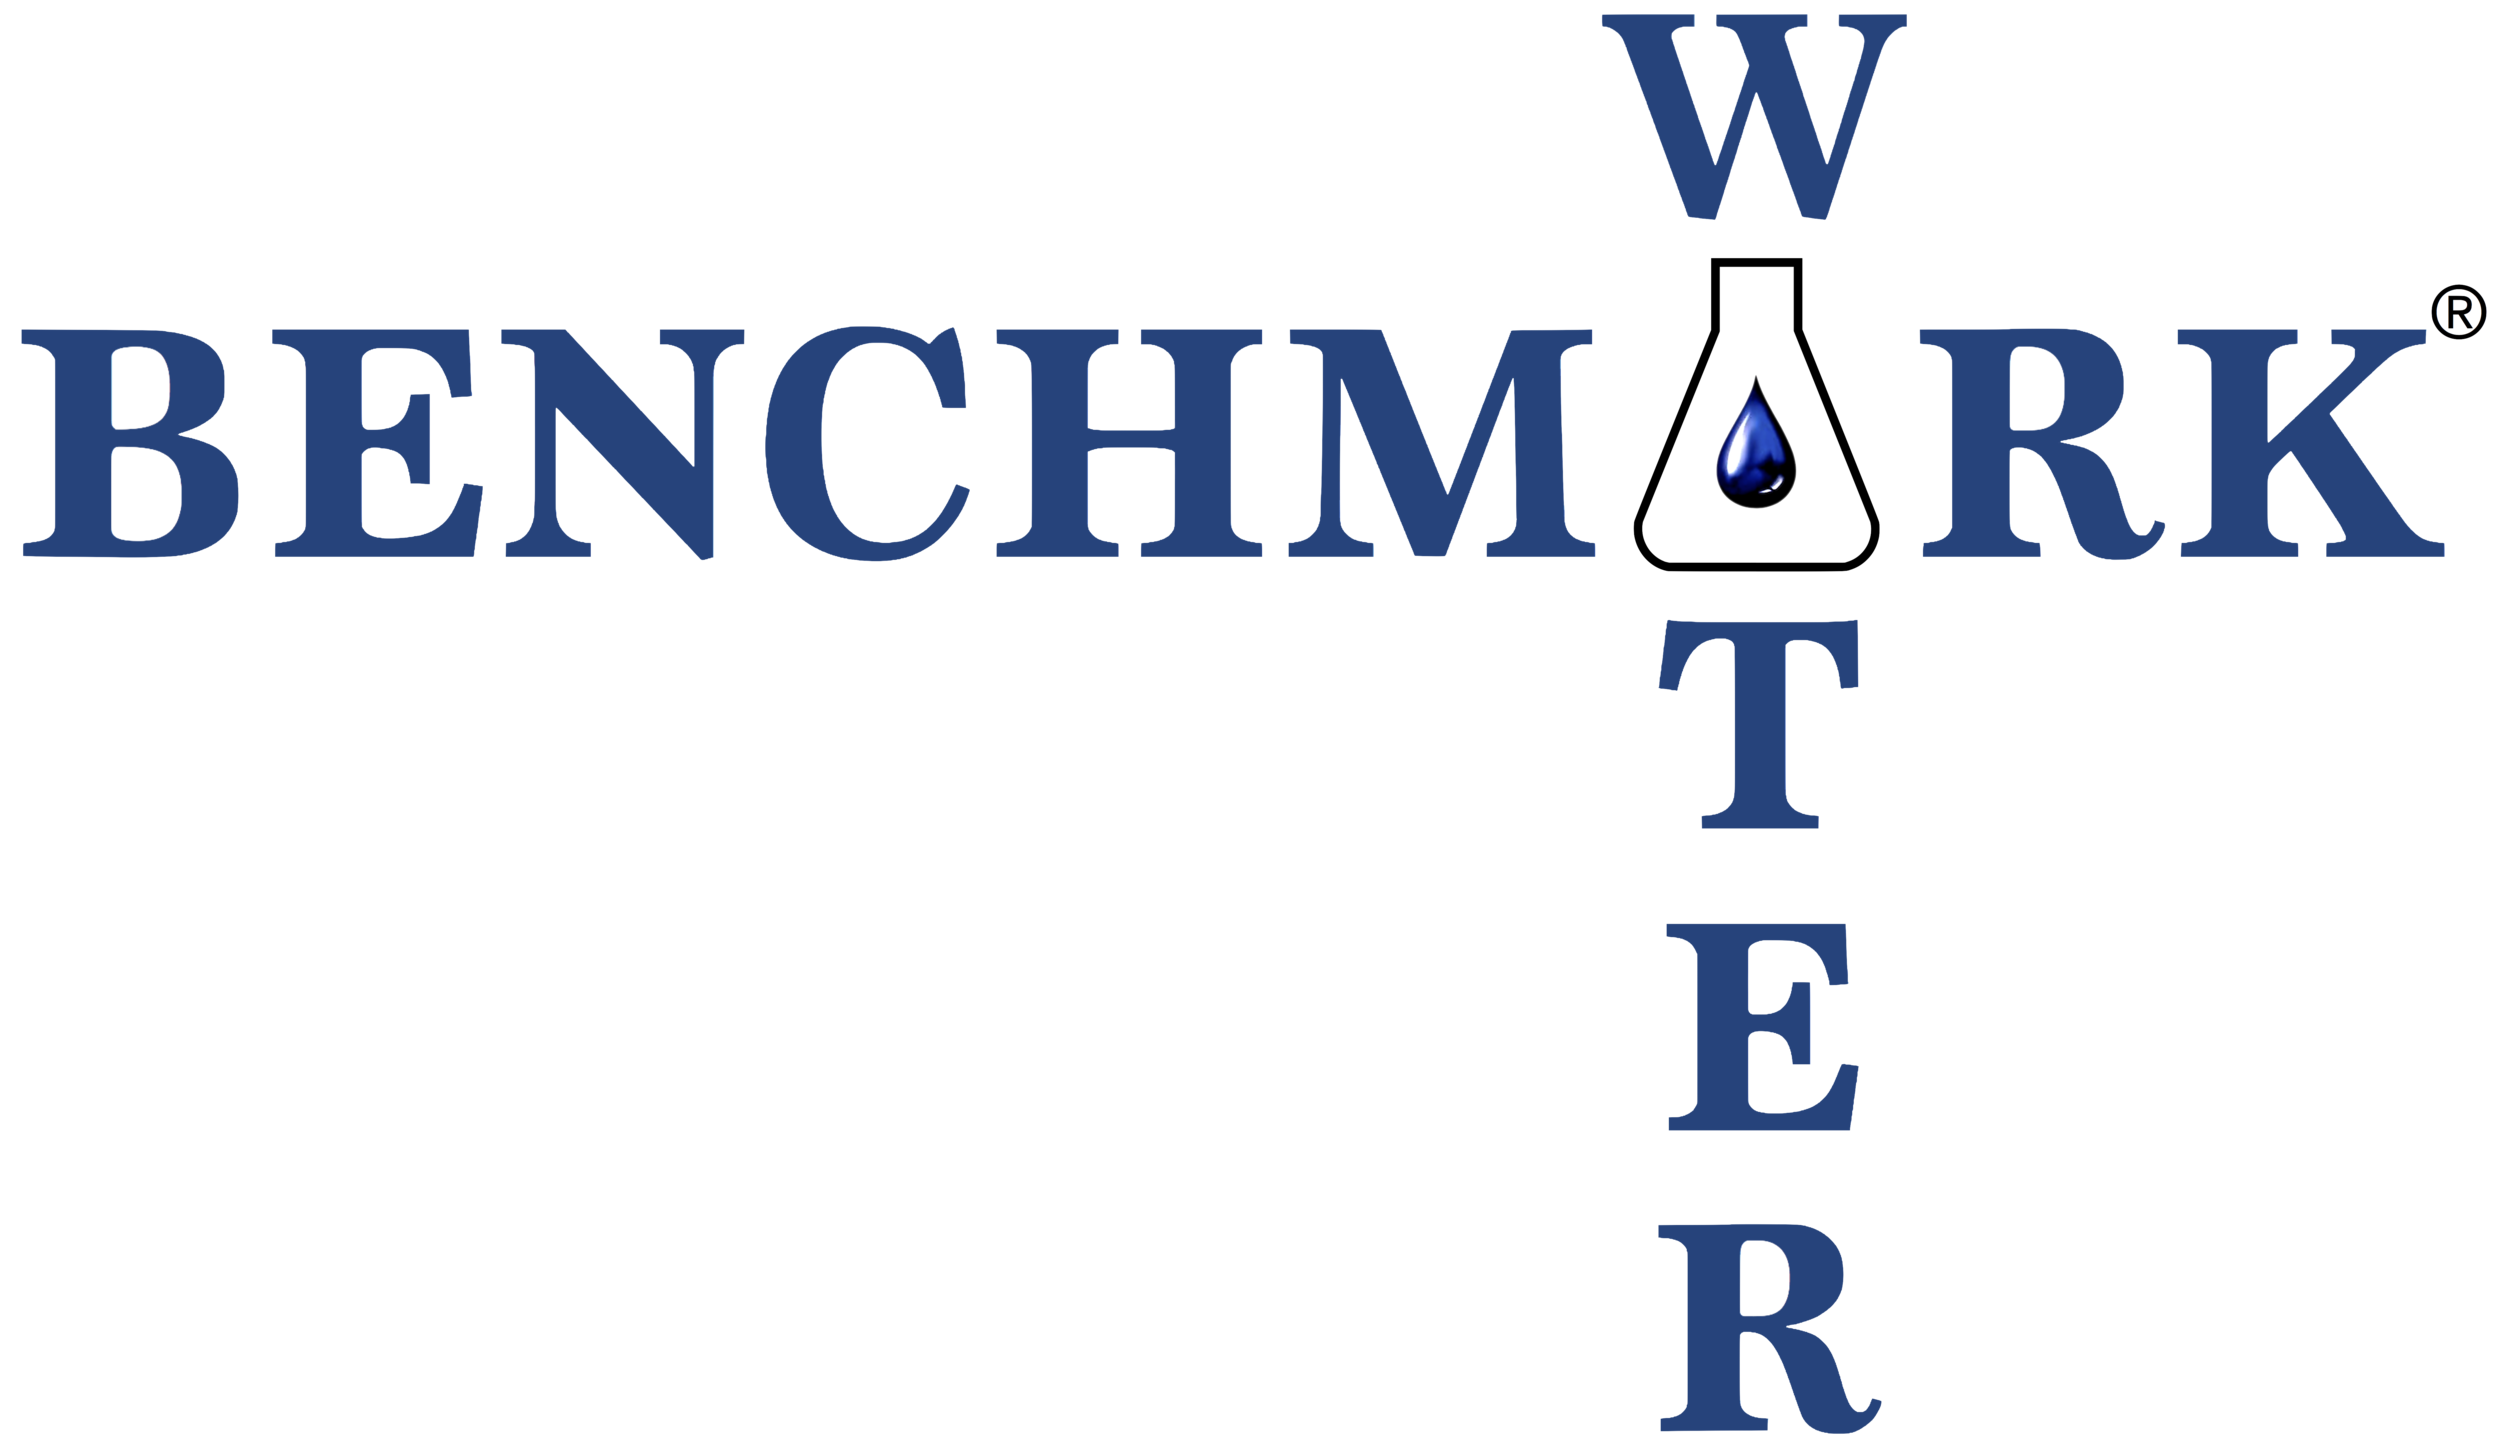 Benchmark Water Service